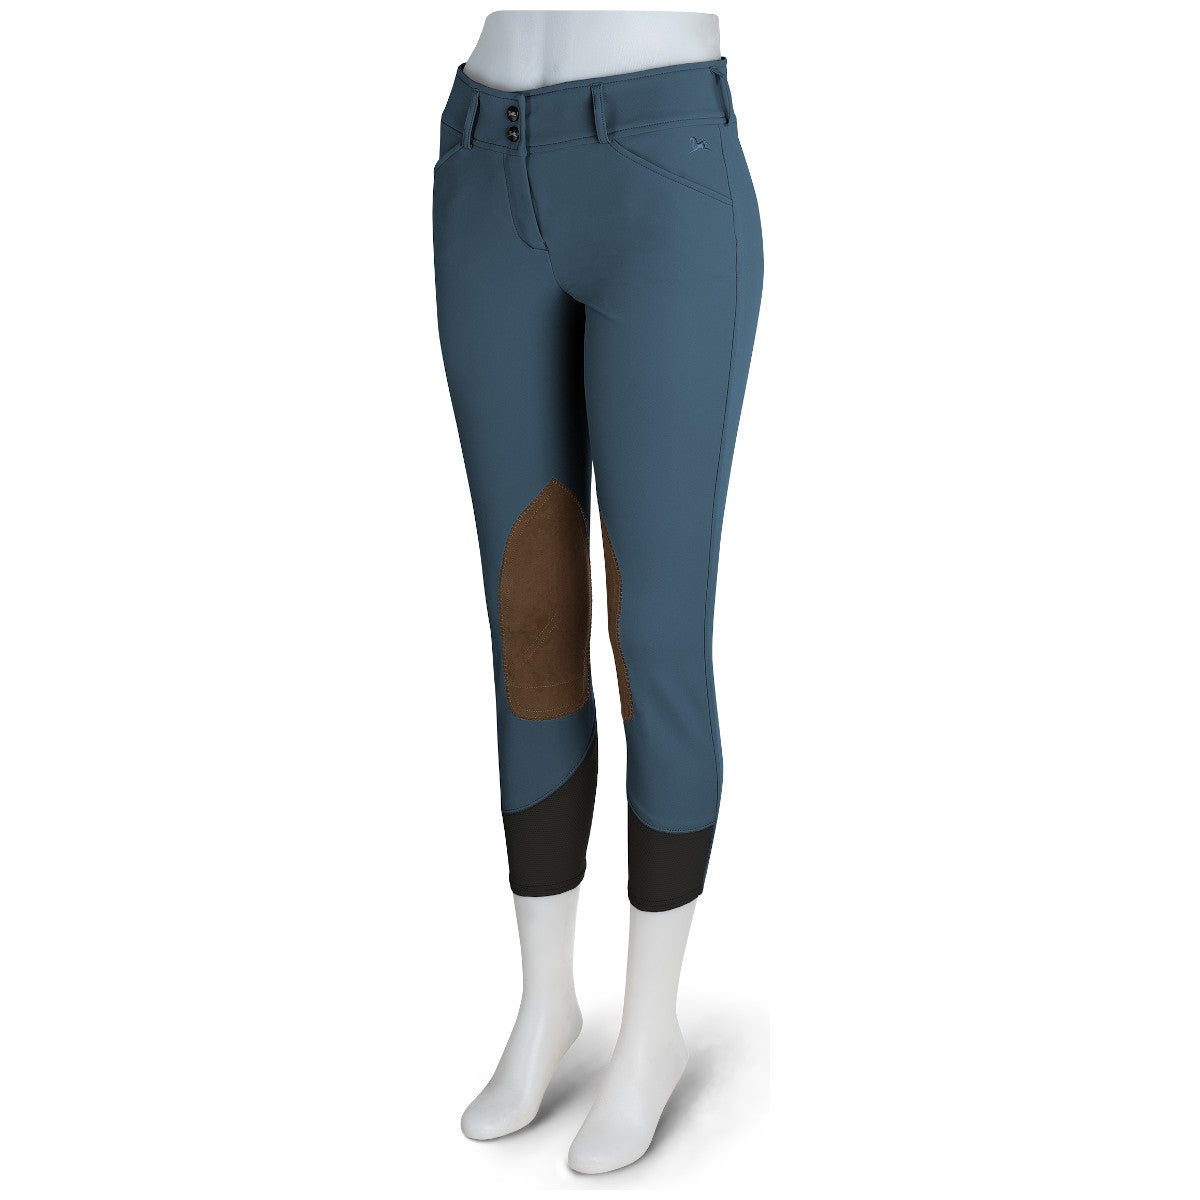 R.J. Classics Women's Pacific Gulf Natural Rise Front Zip Knee Patch Breeches